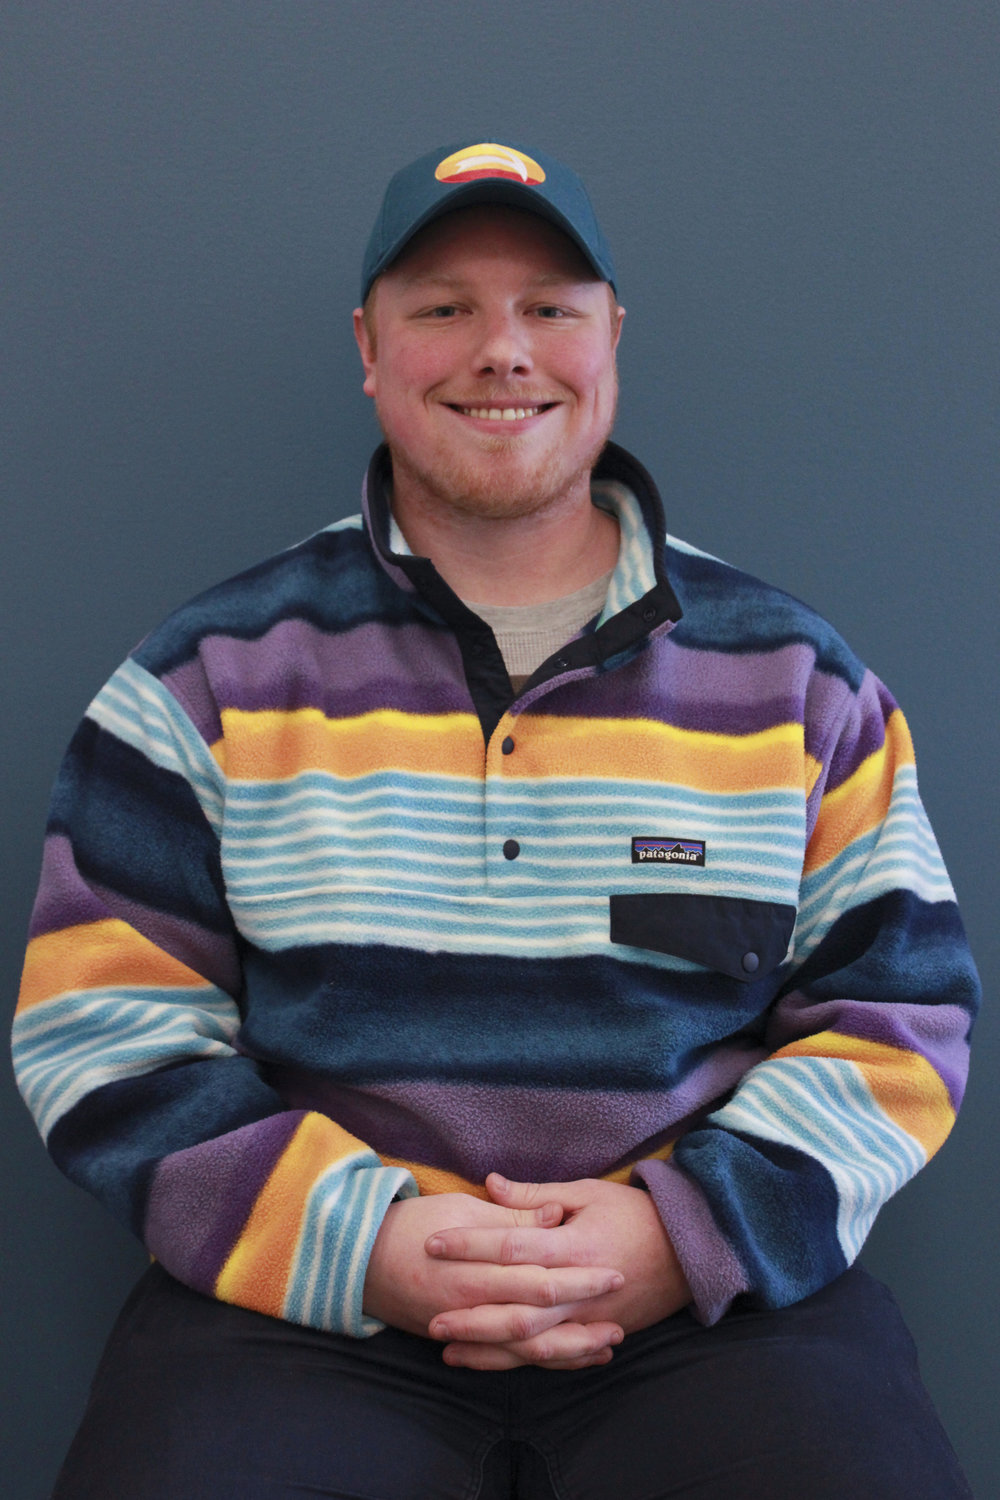 Nick Williams - Nick Williams is a senior journalism major from South Dennis, Massachusetts. He is pursuing a job in sports media after graduation. Other than watching sports, he enjoys talking about sports, going to sporting events and writing about sports. He also likes dogs.